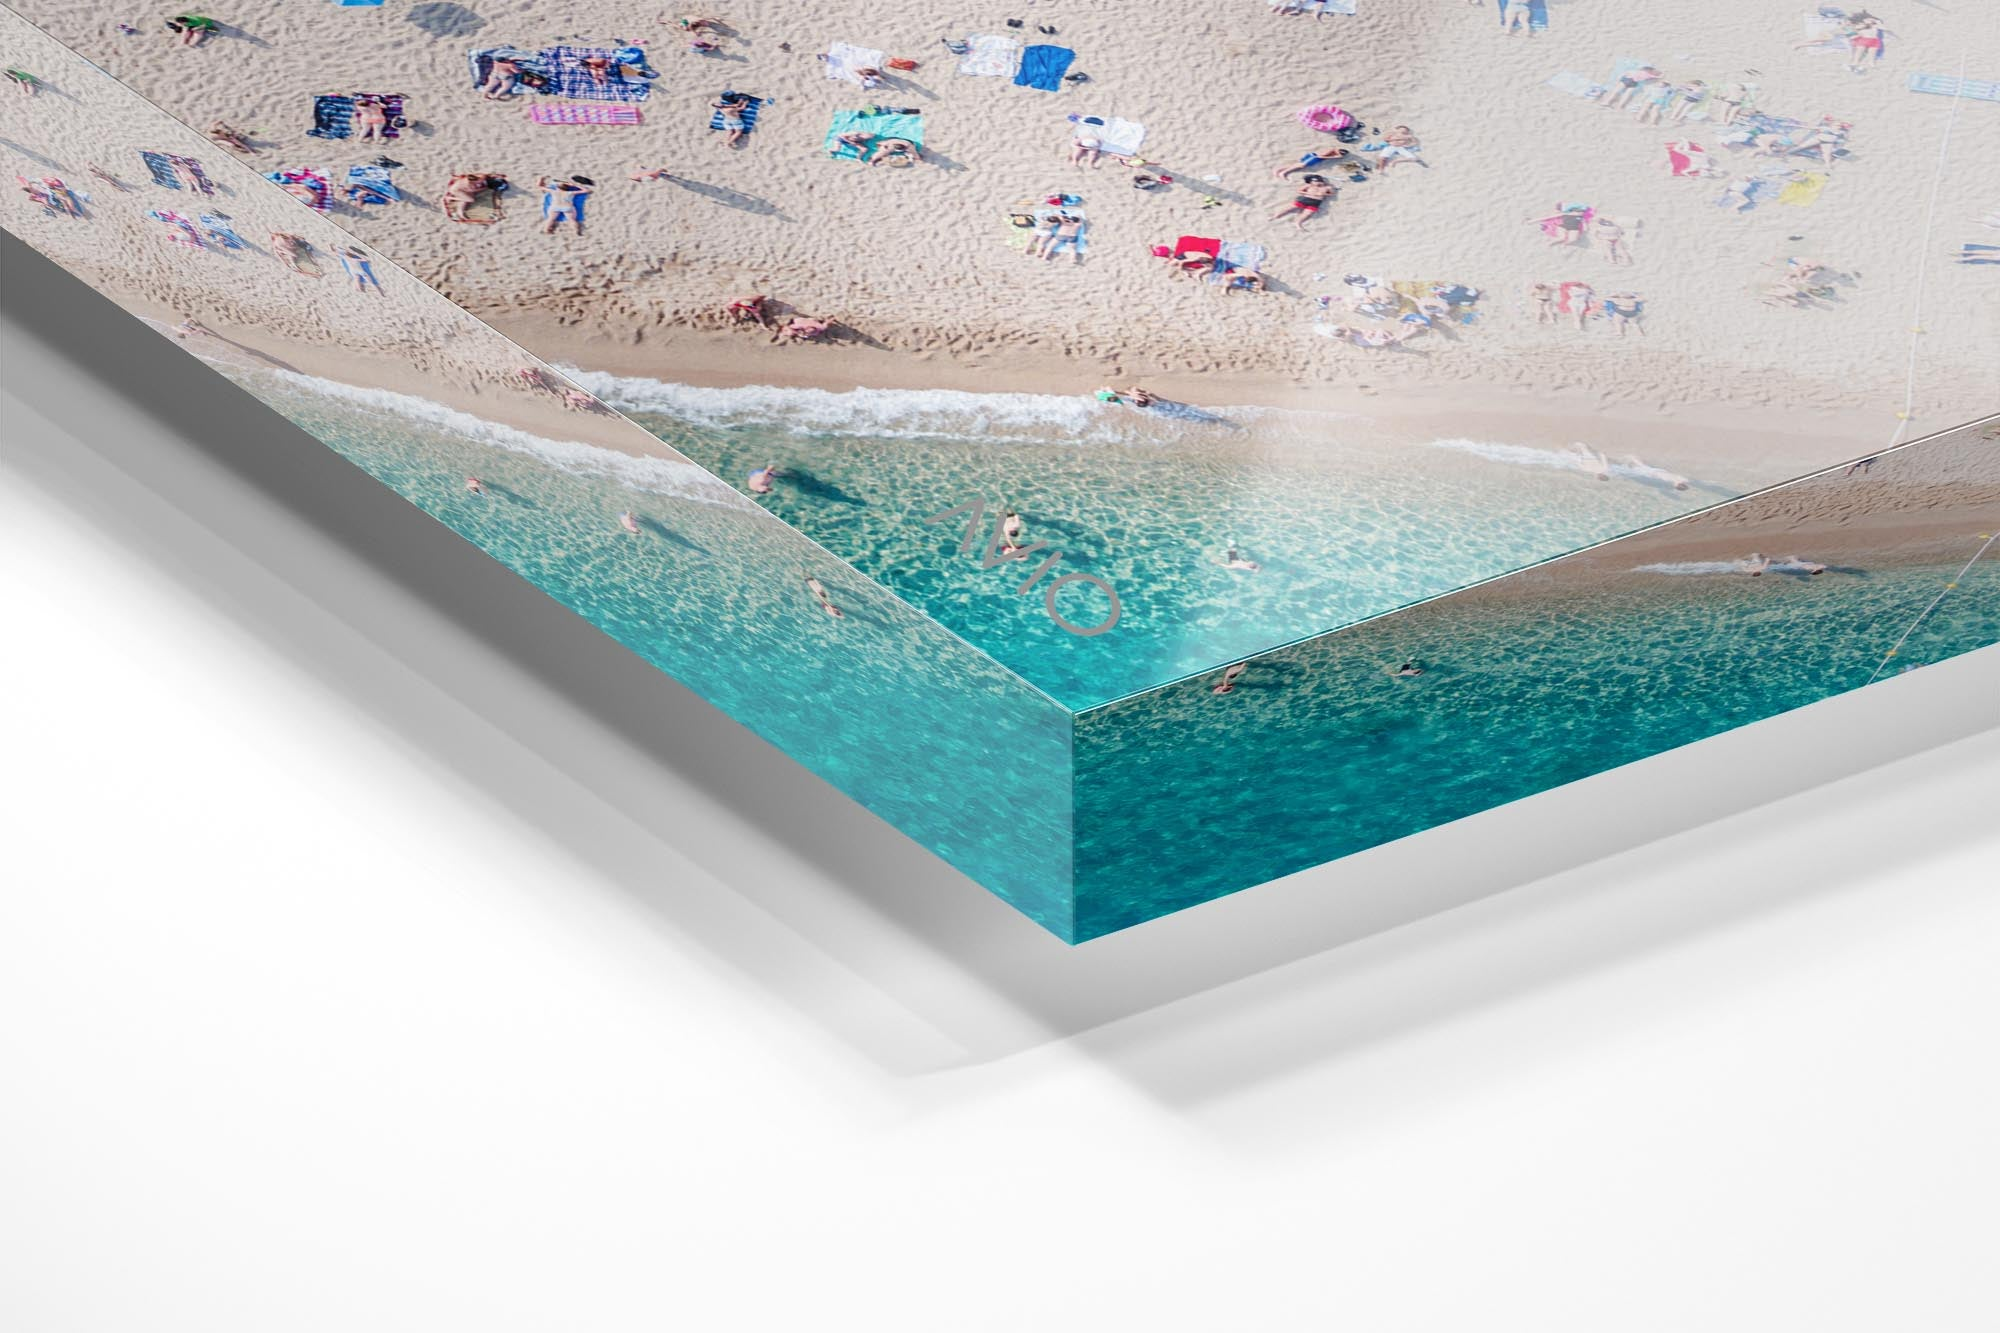 Aerial of people lying in the sun on the beach in an acrylic/perspex frame